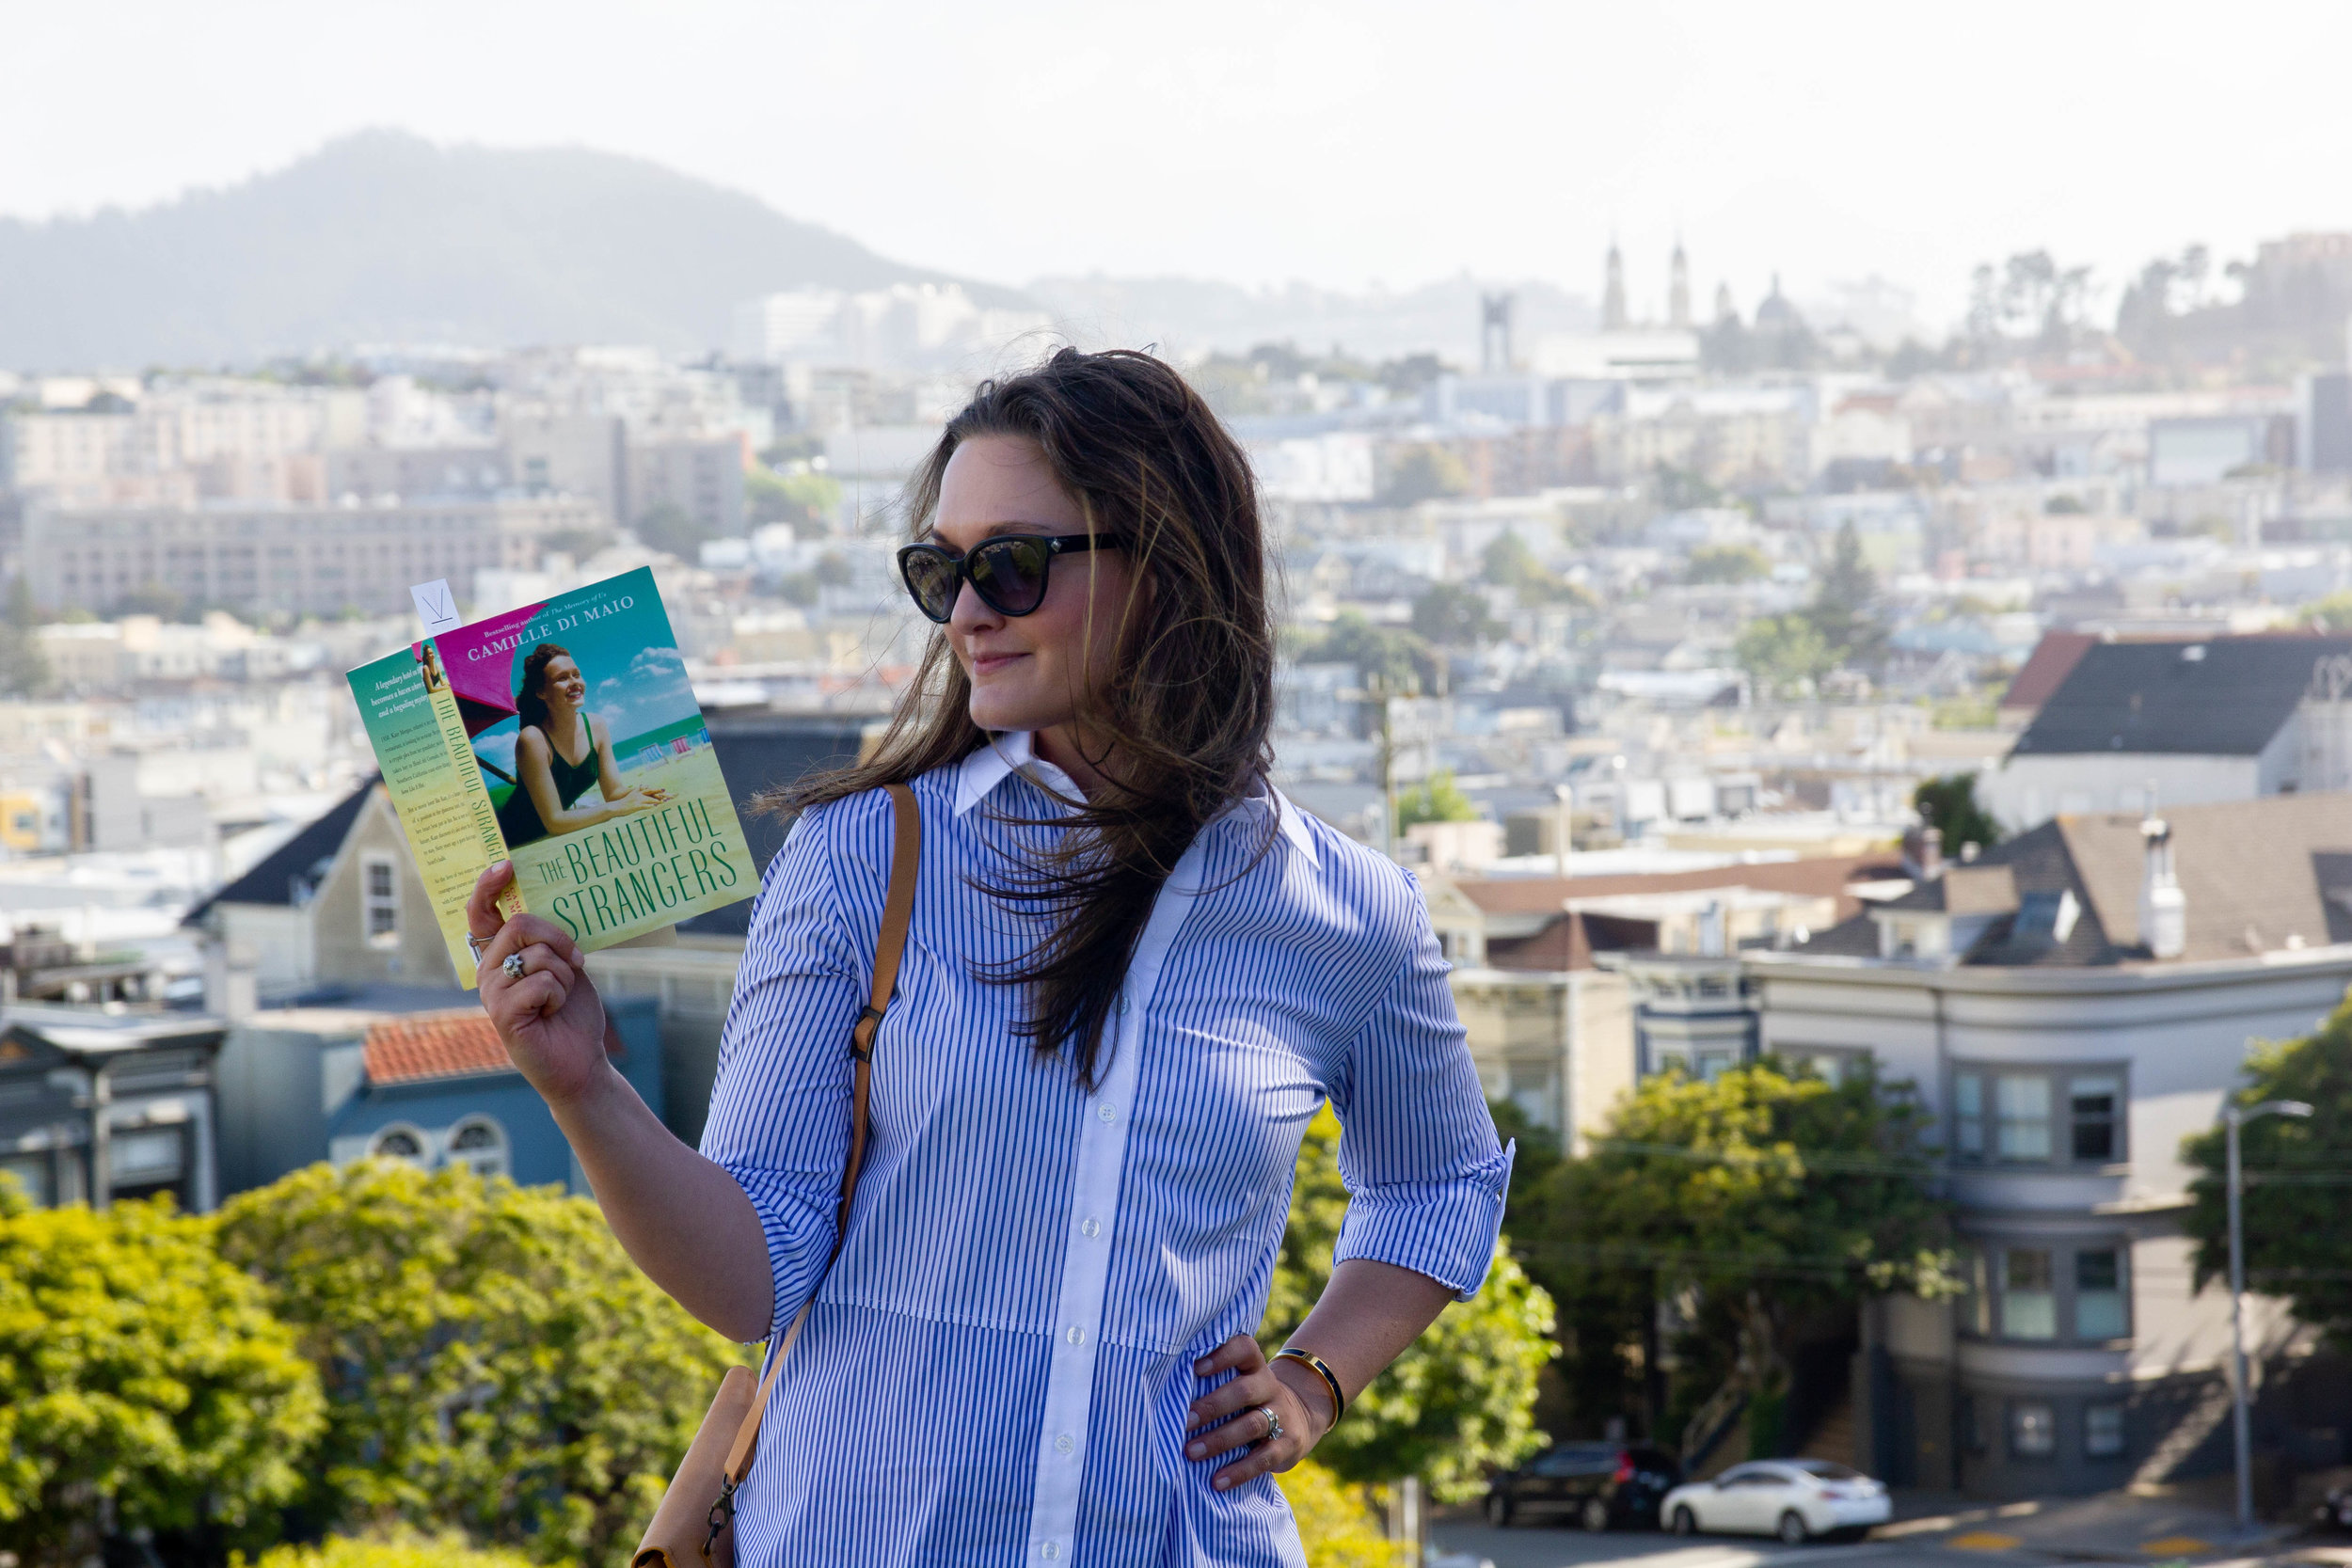 Reading The Beautiful Strangers by Camille di Maio in San Francisco, CA